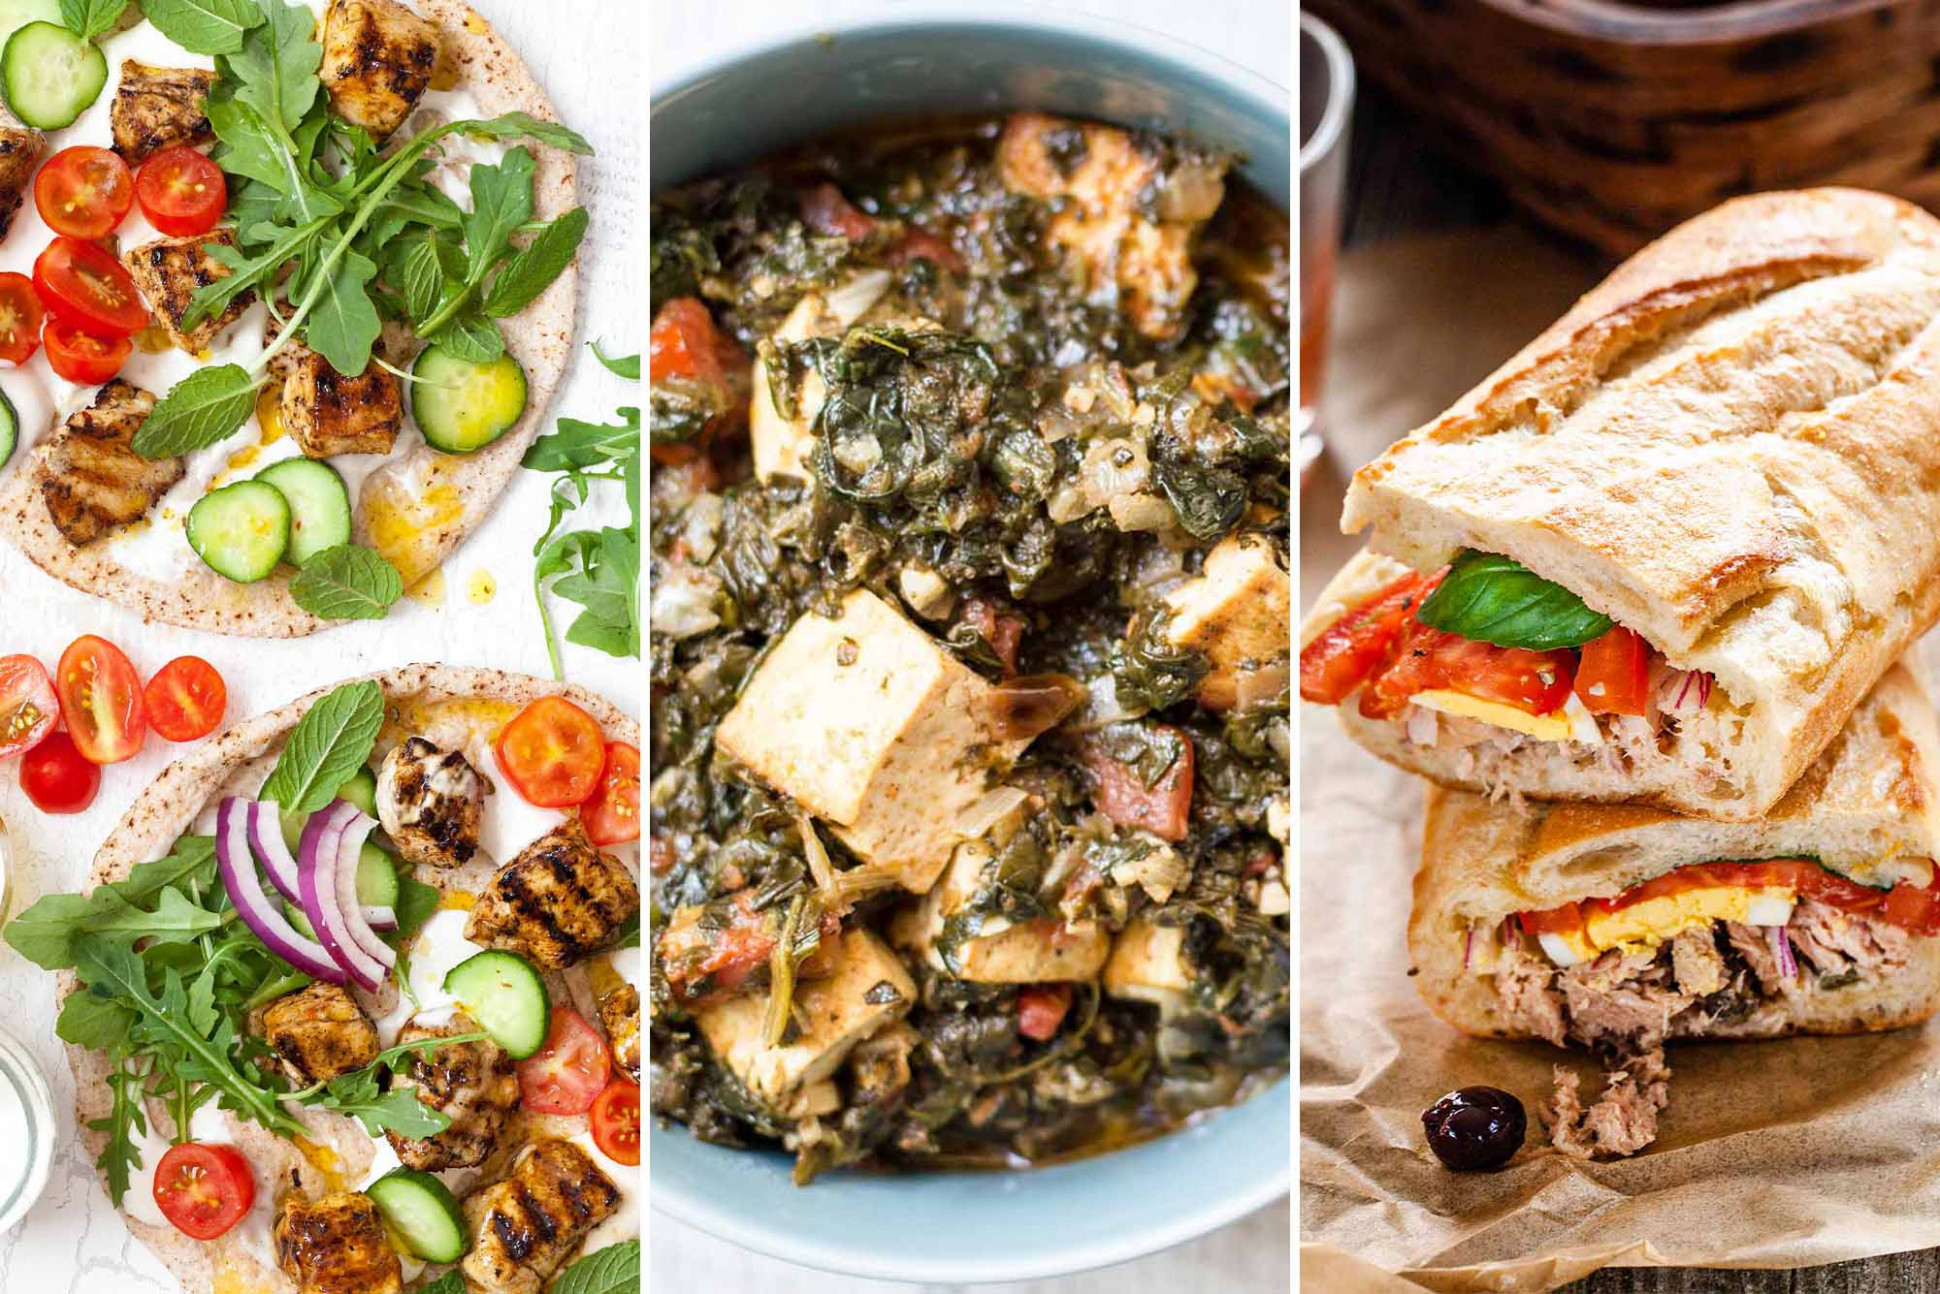 Simply Recipes 15 Meal Plan: August Week 15 | SimplyRecipes